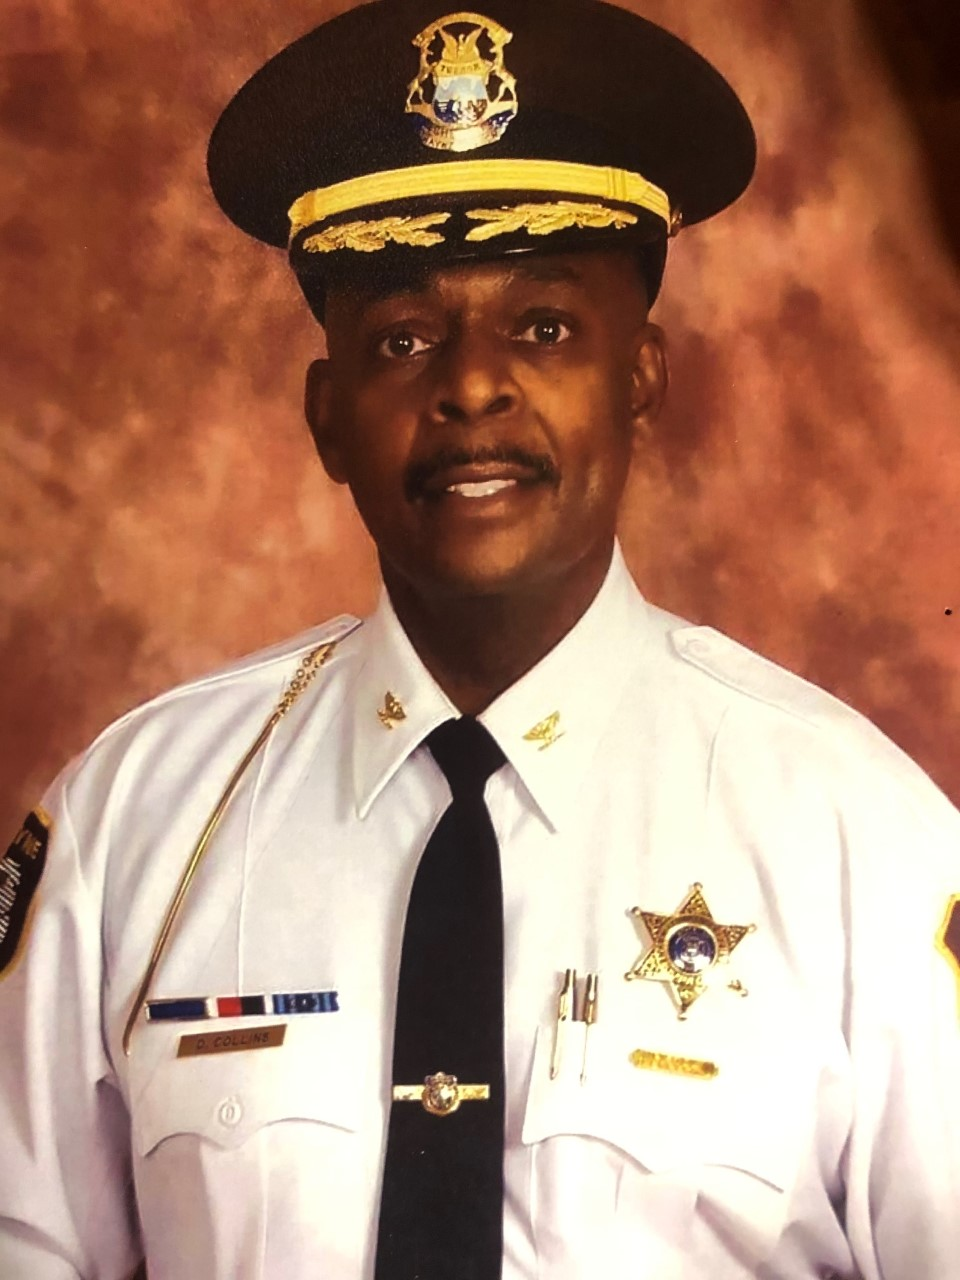 Commander Donafay Collins | Wayne County Sheriff's Office, Michigan